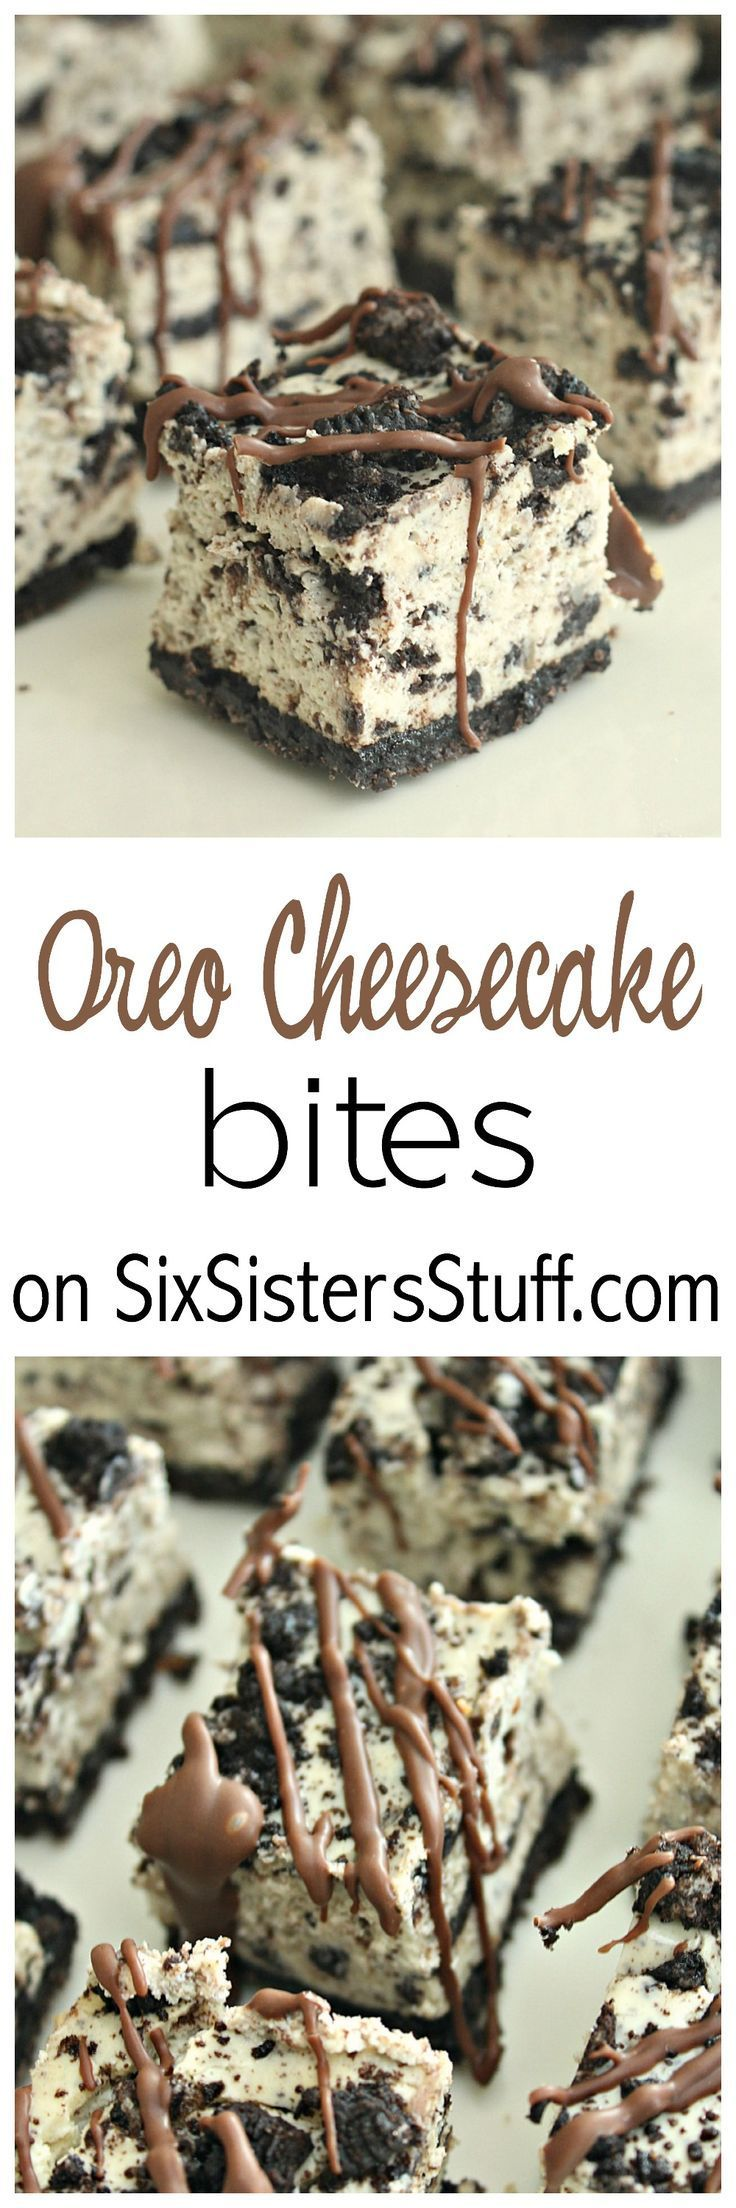 Oreo Cheesecake Bites only on http://SixSistersStuff.com